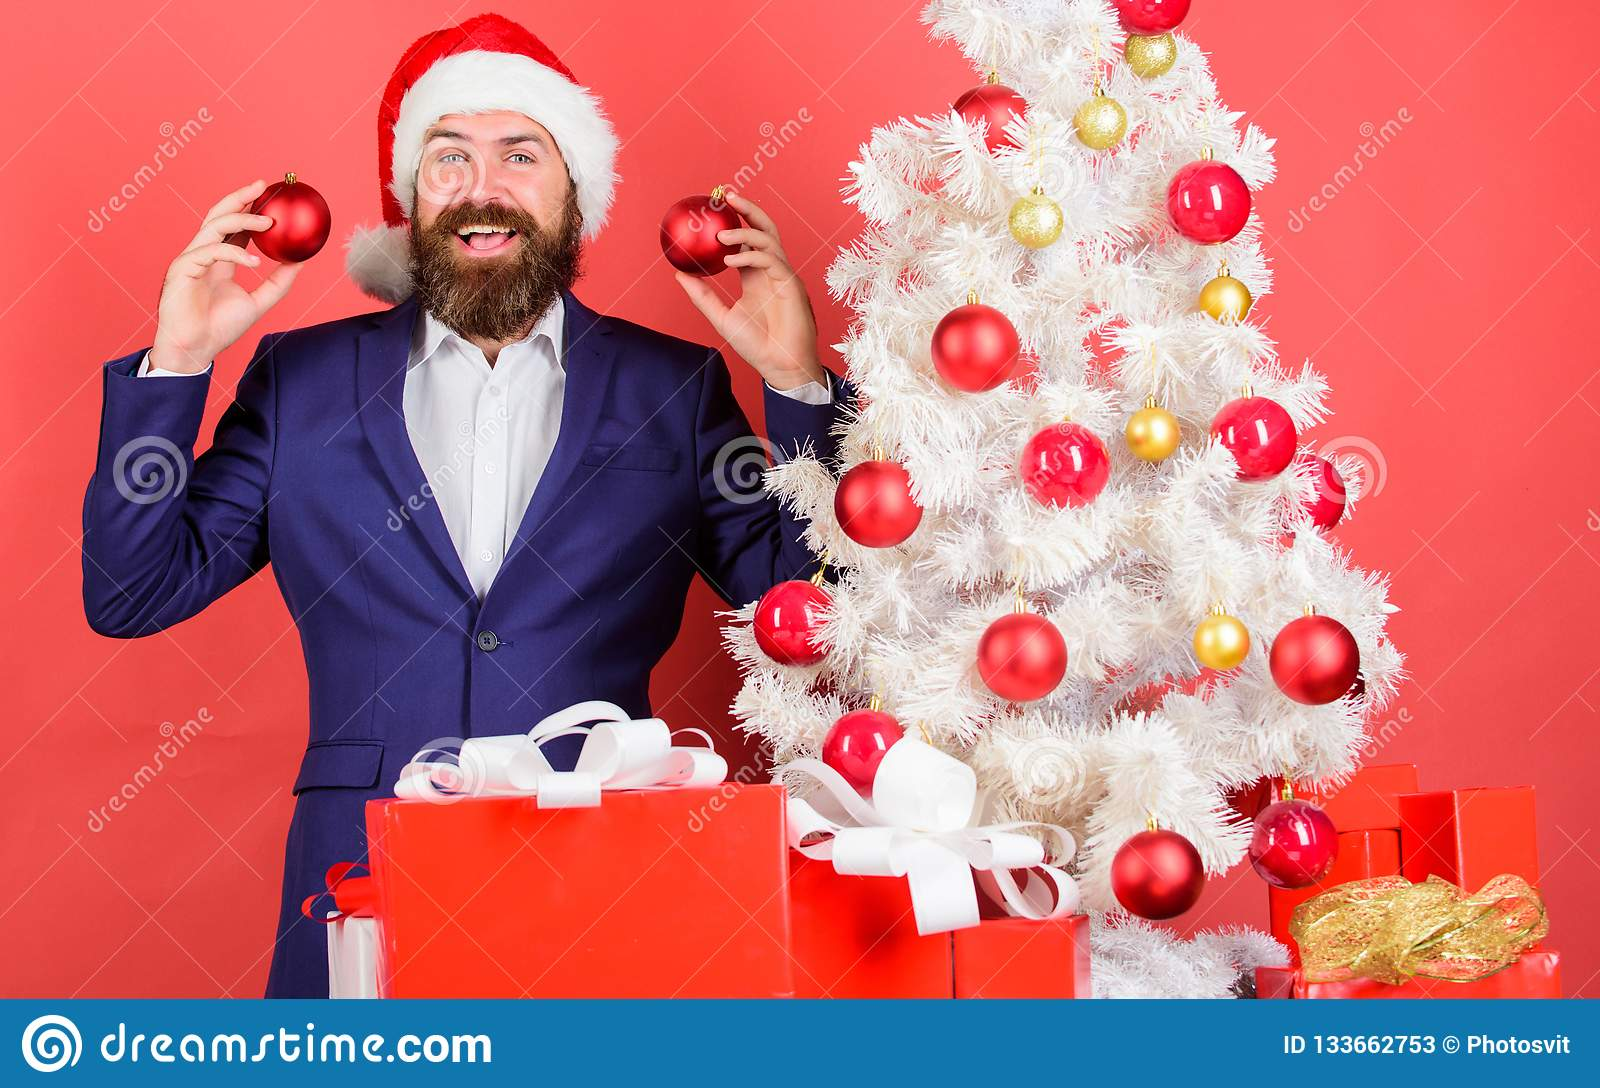 5fd83a40750b2 santa-hold-christmas-ball-decoration-merry-christmas-christmas -atmosphere-spread-around-add-magic-to-holidays-man-santa-hold-133662753.jpg